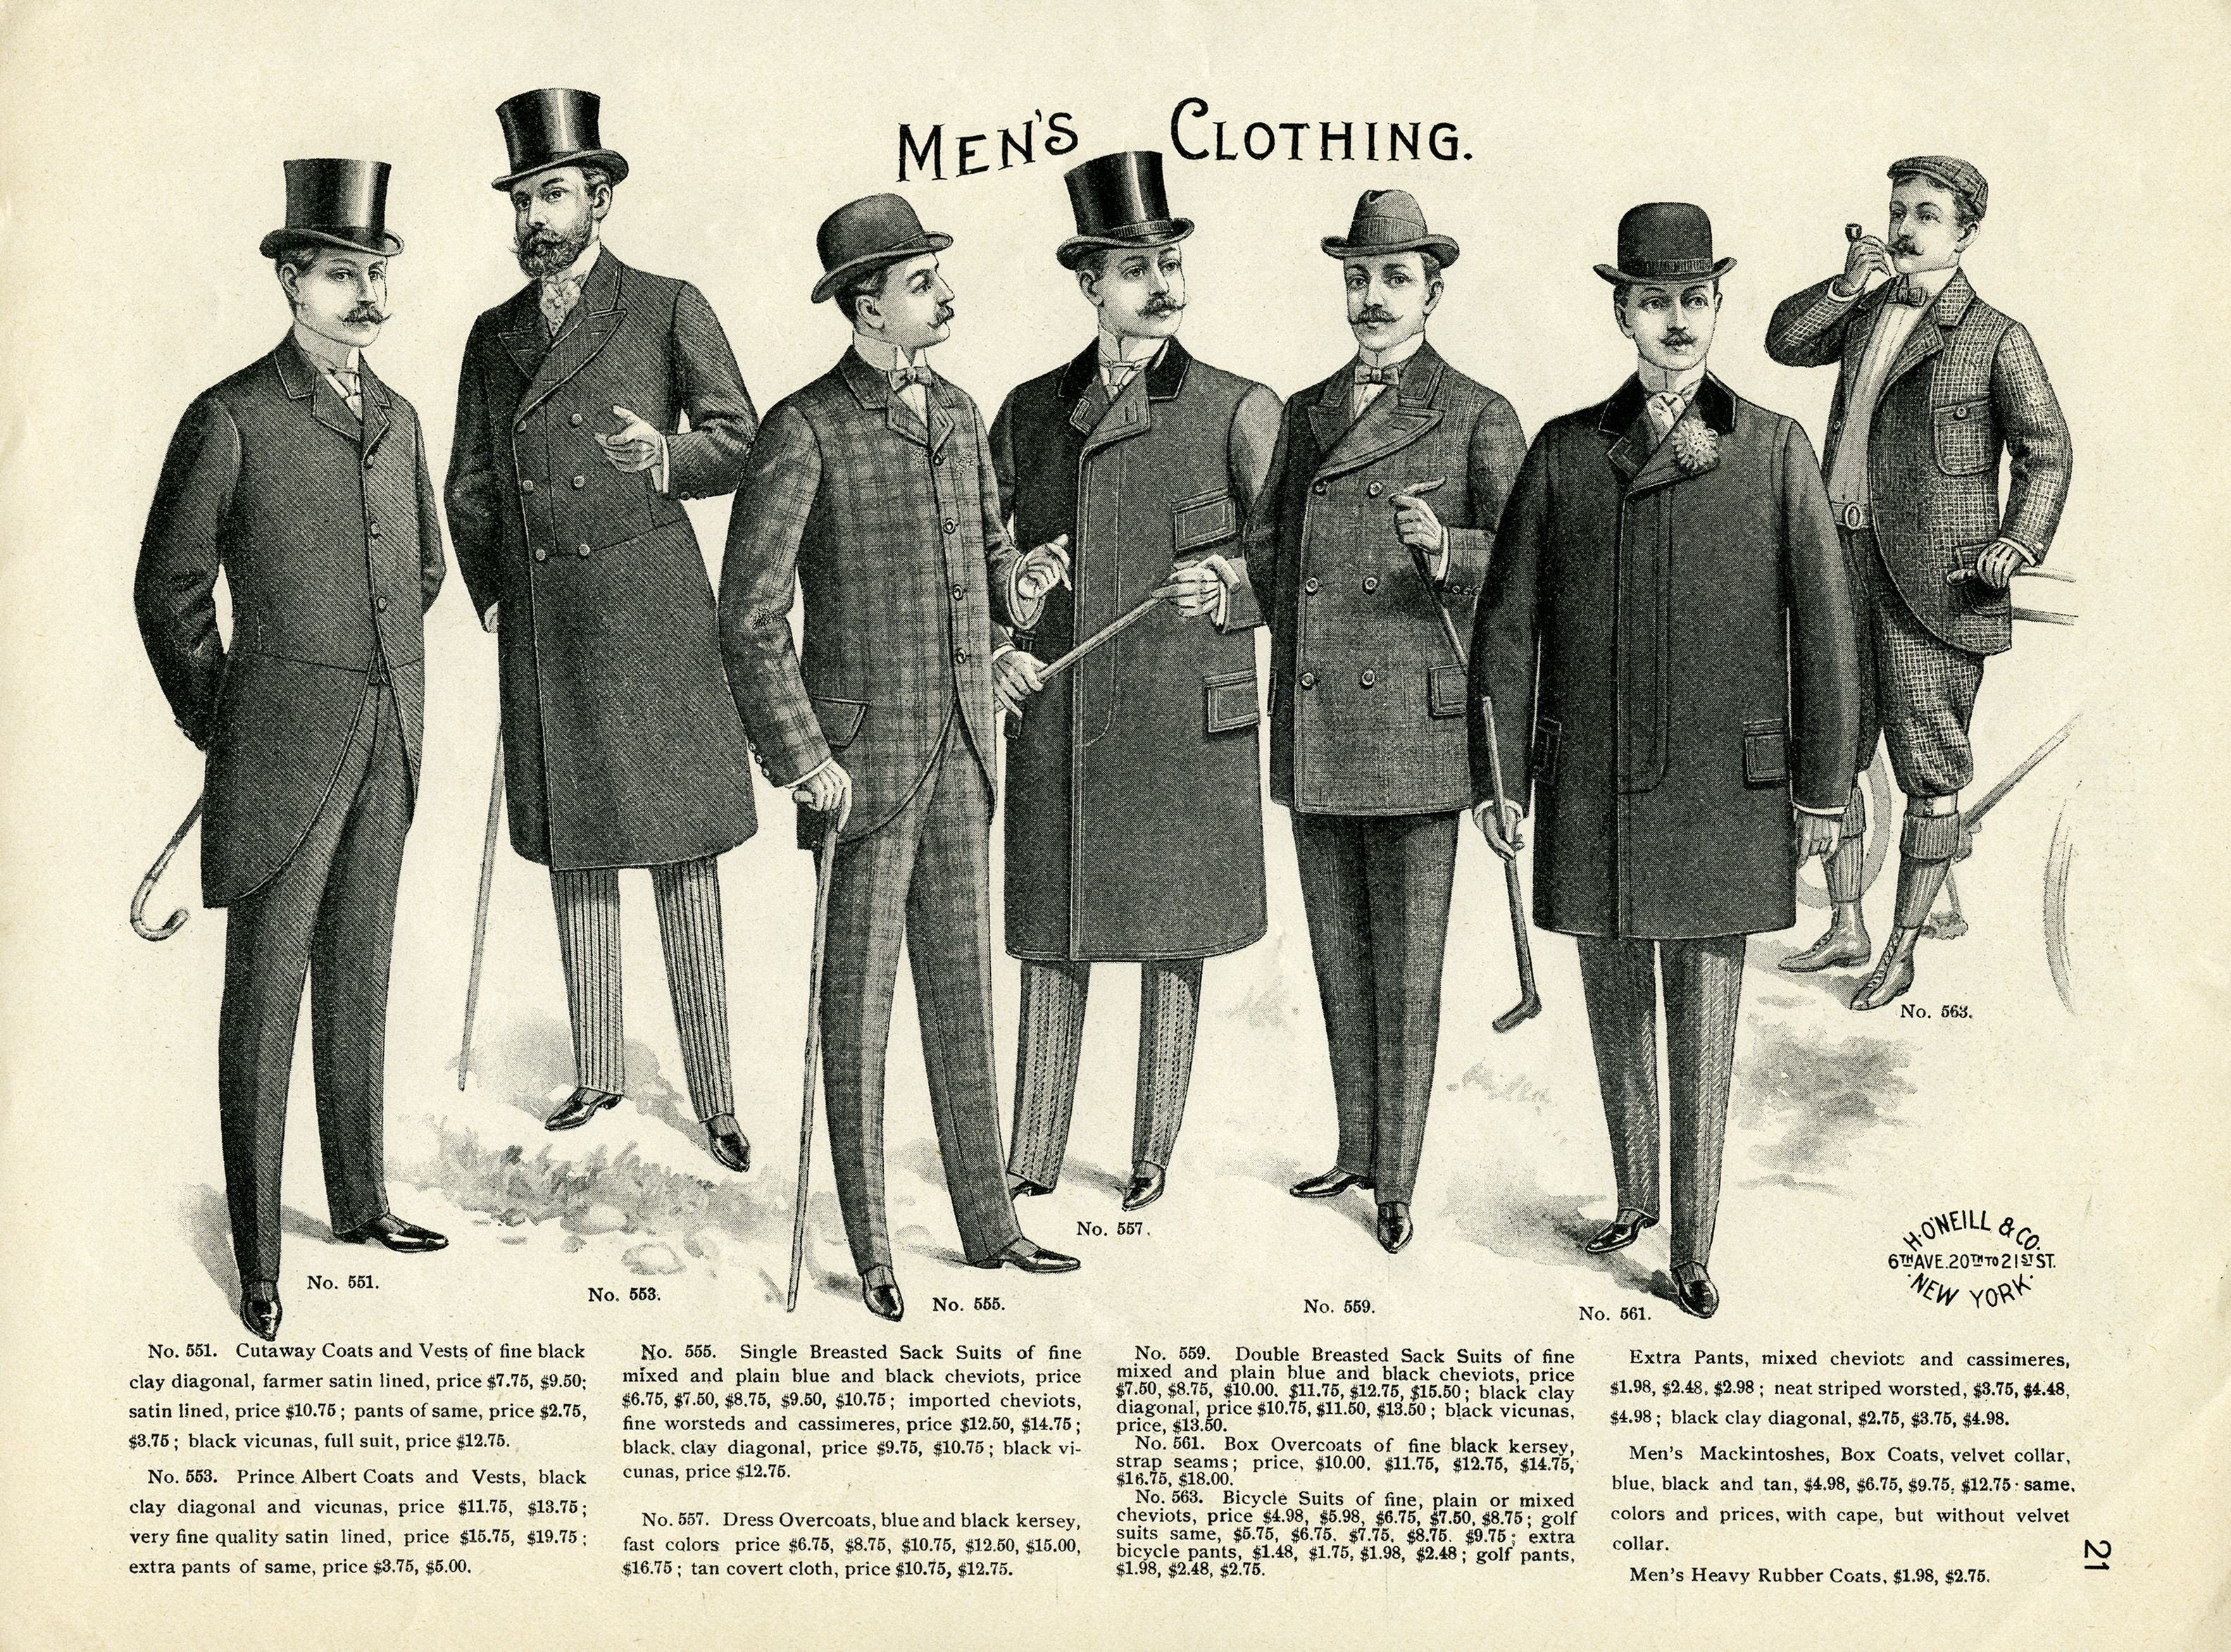 An ad from the Christmas 1896 issue of Harper's New Monthly.